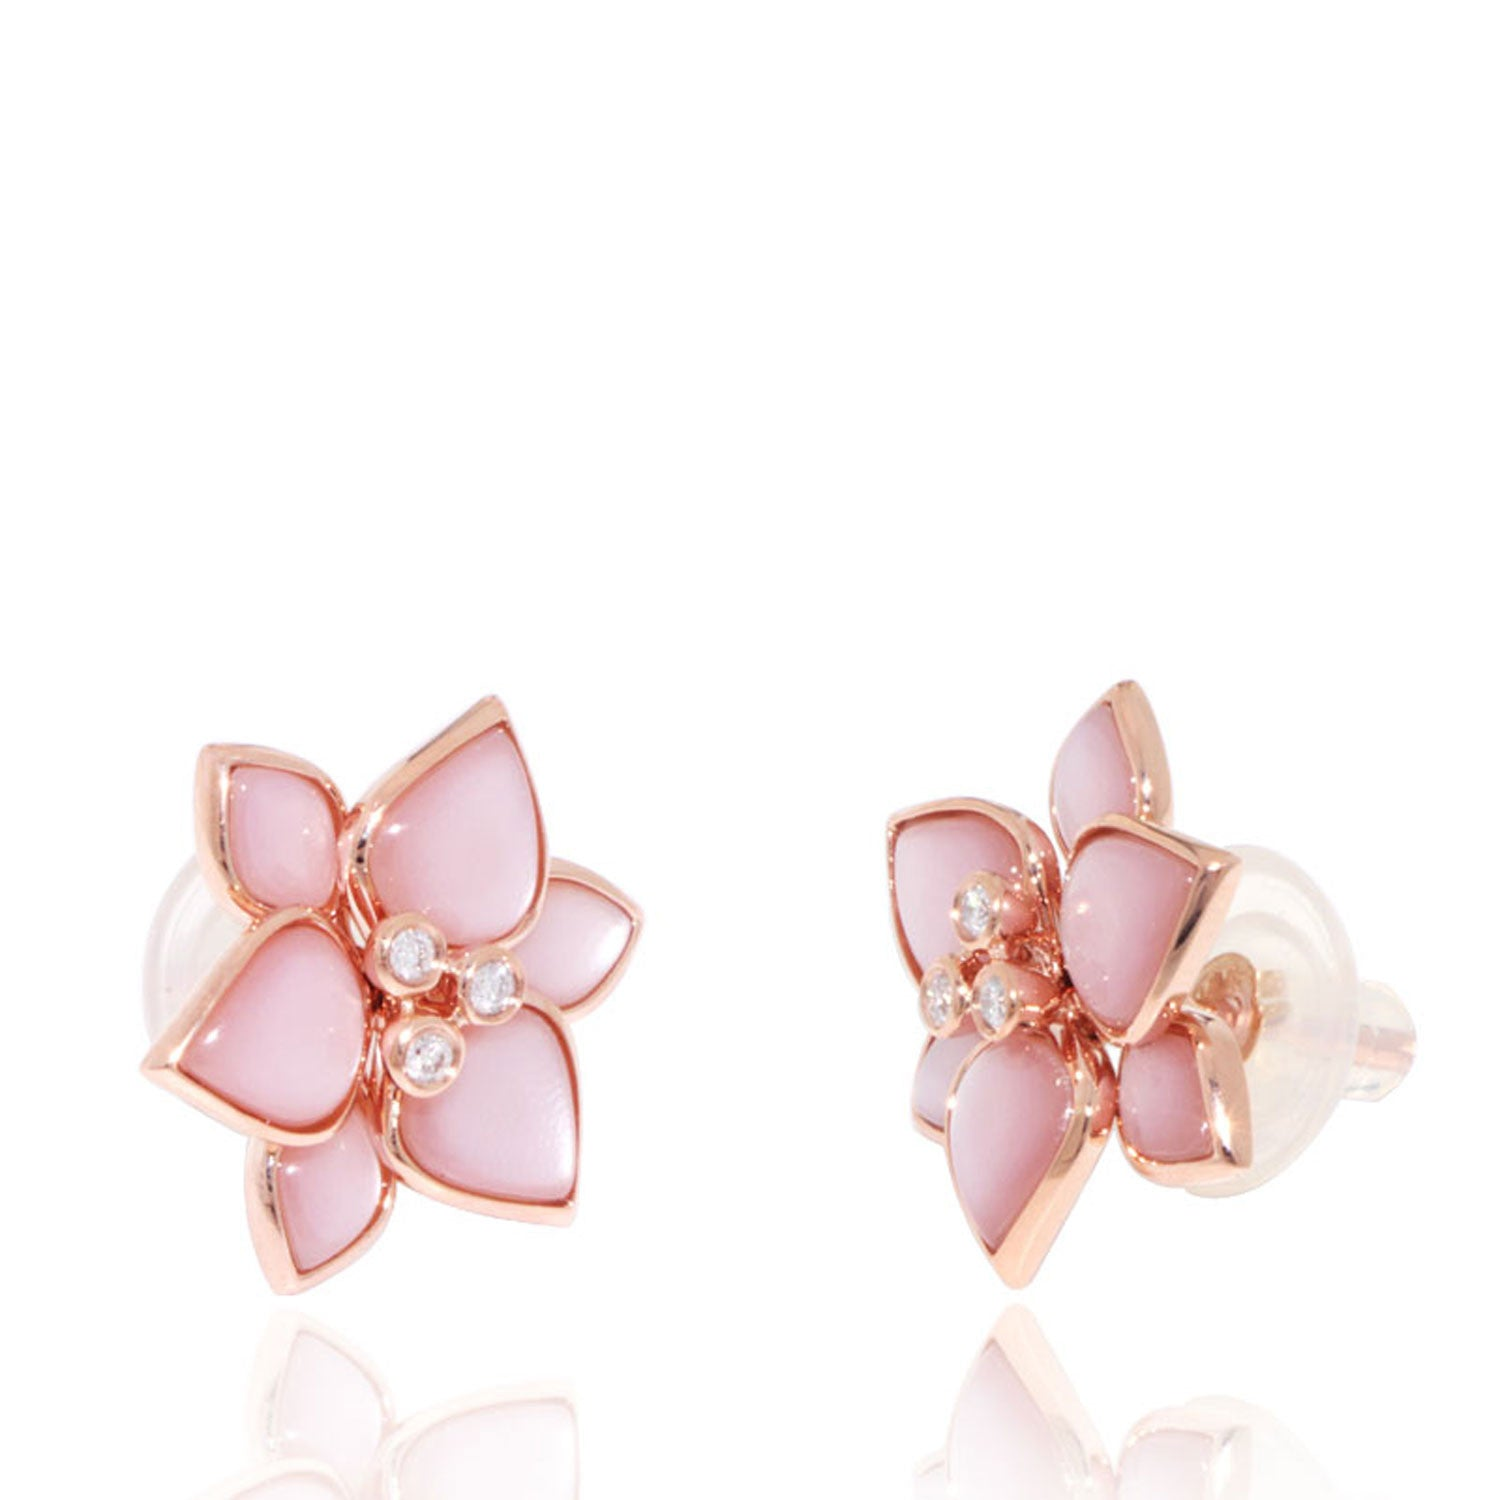 Flower Earrings In Pink Mother Of Pearl New Wave Jewellery